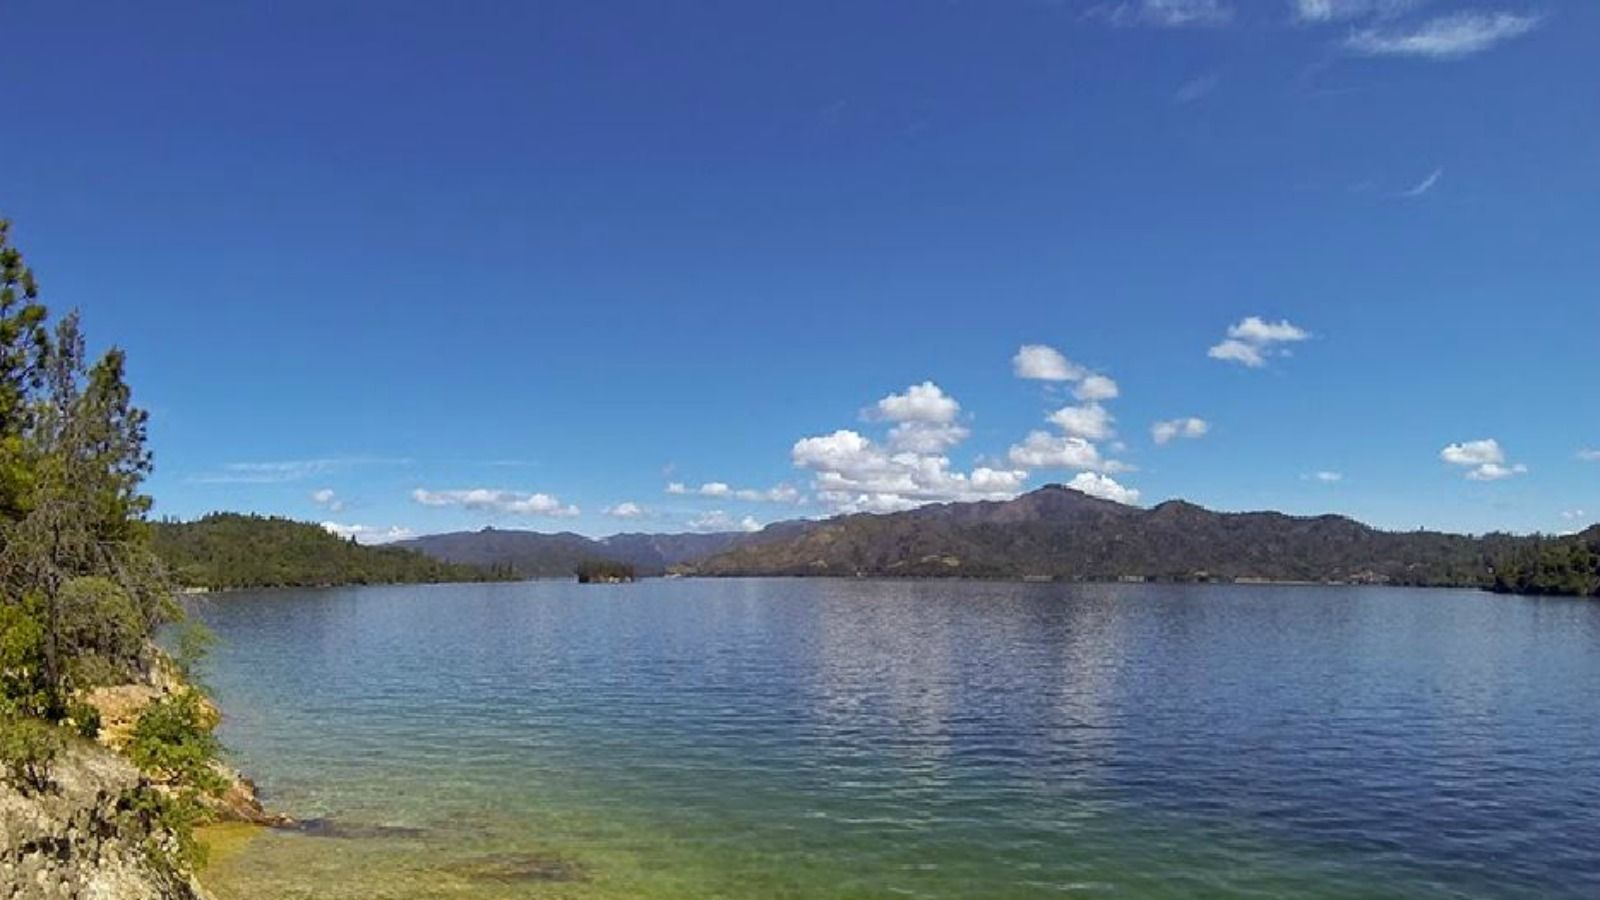 Things to Do in Redding - Whiskeytown Lake and Water Falls